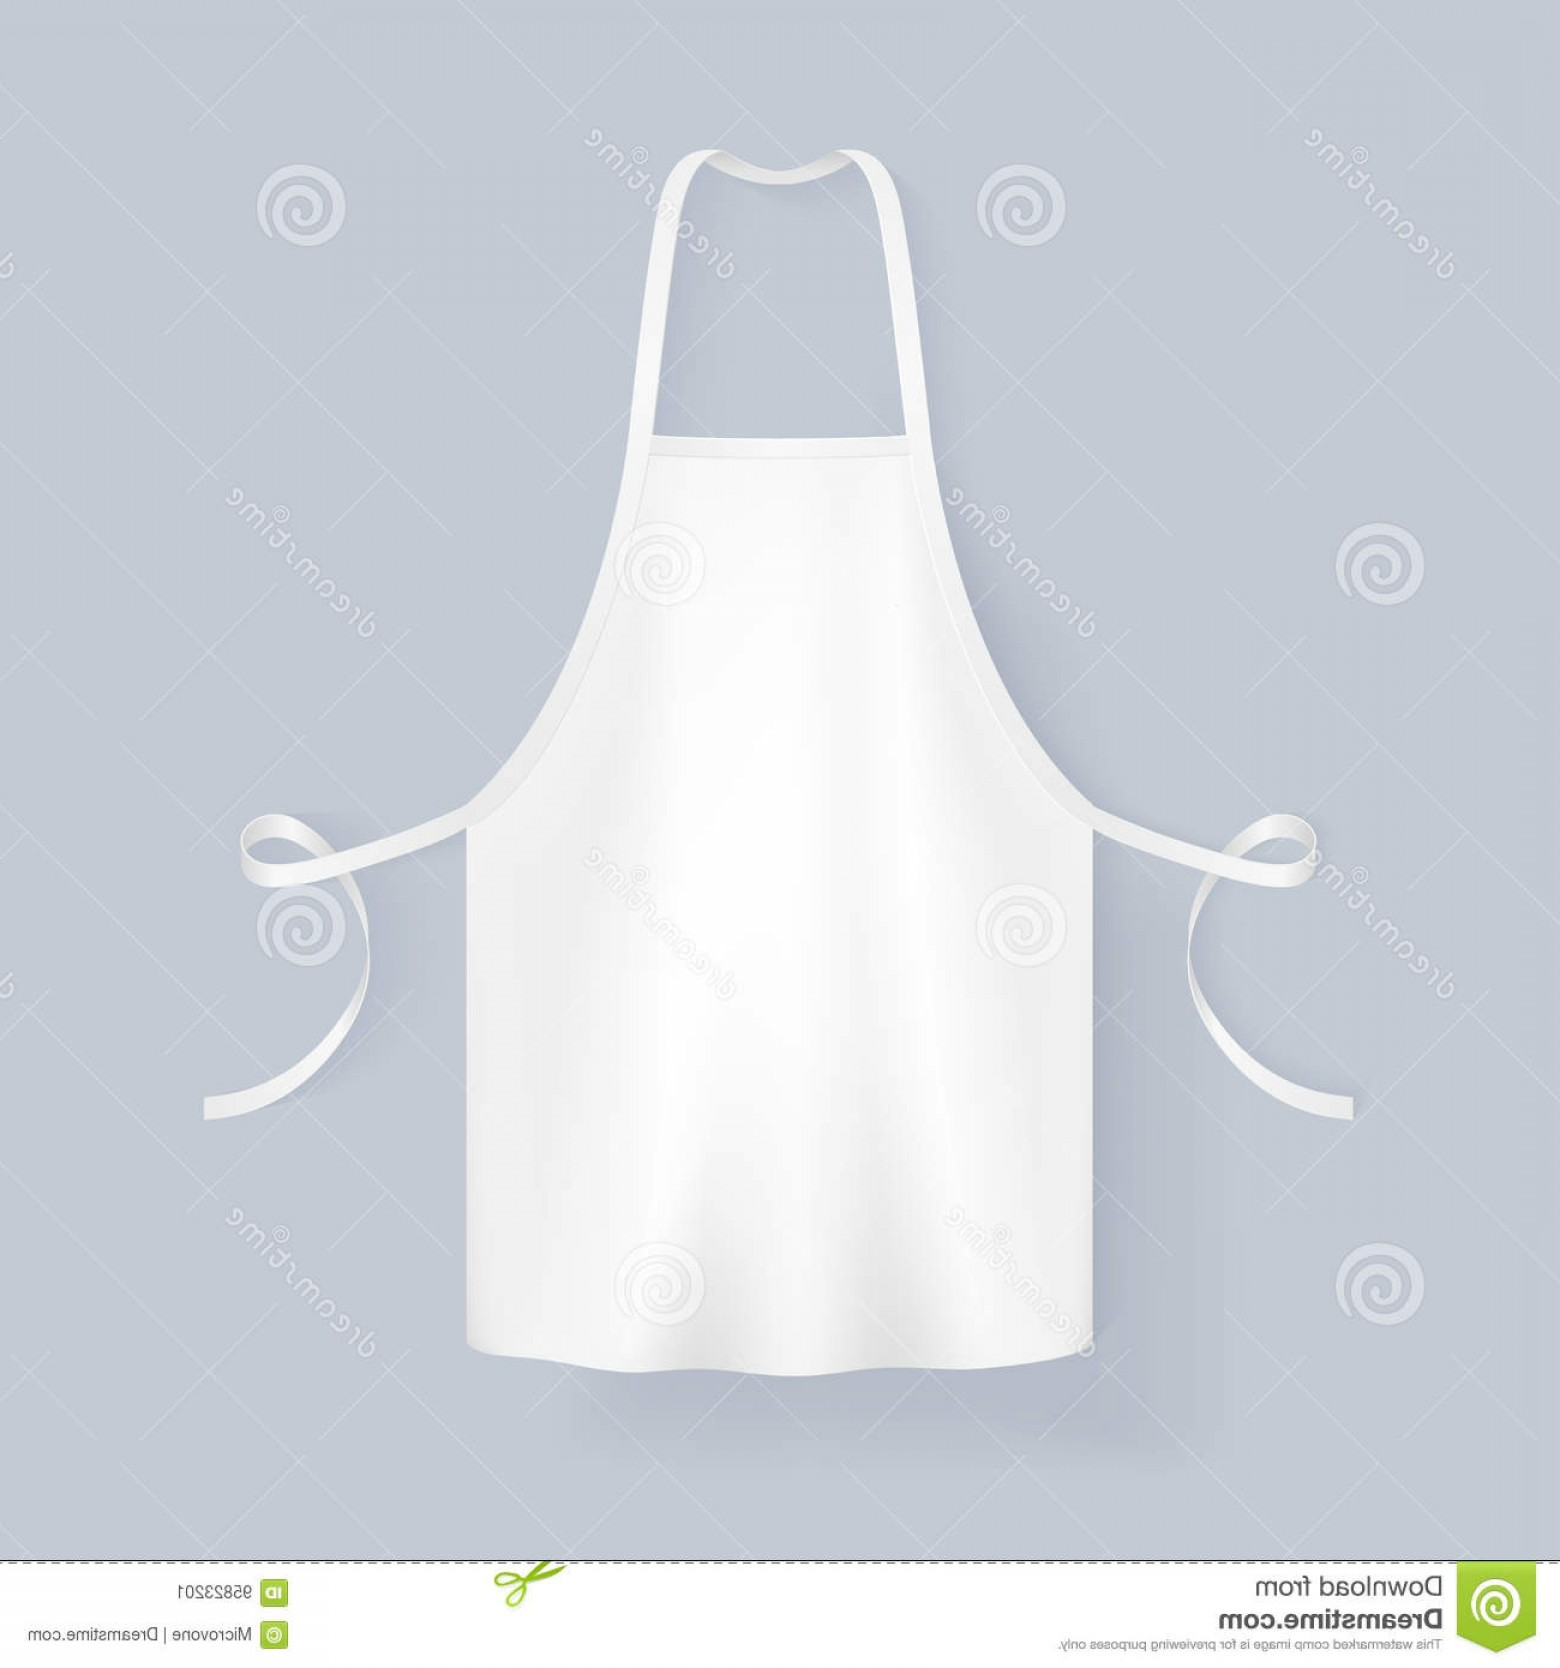 Apron Vector: Stock Illustration White Blank Kitchen Cotton Apron Vector Illustration Protective Uniform Cooking Baker Image